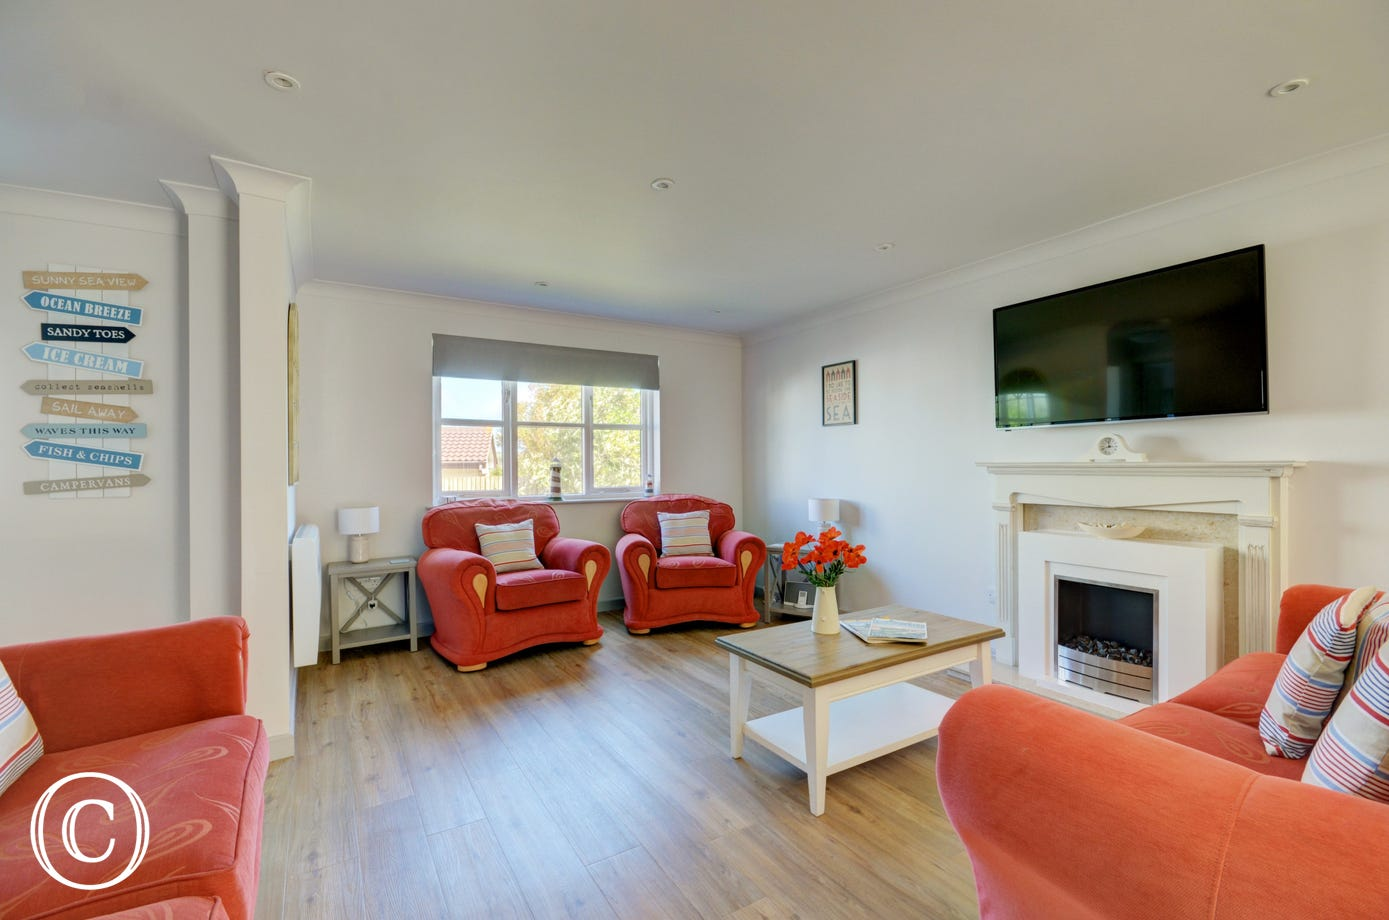 The stylish living/dining room has comfy sofas surrounding the fireplace and patio doors leading onto the patio